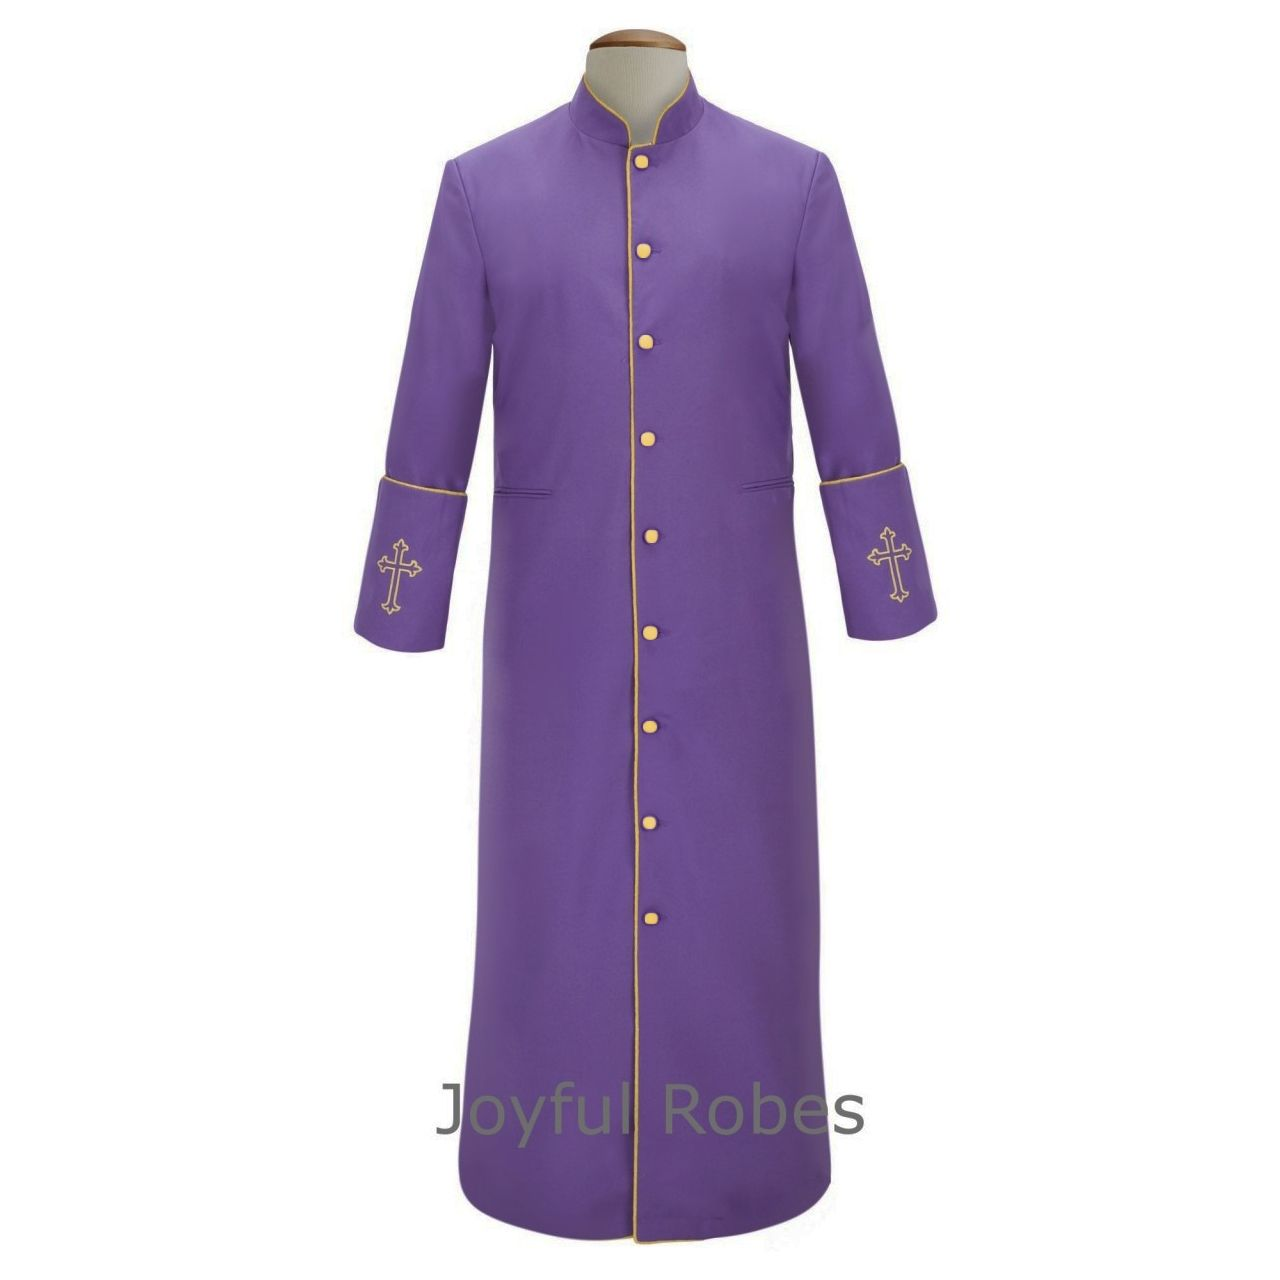 207 M. Men's Clergy/Pastor Robe Purple/Gold Design